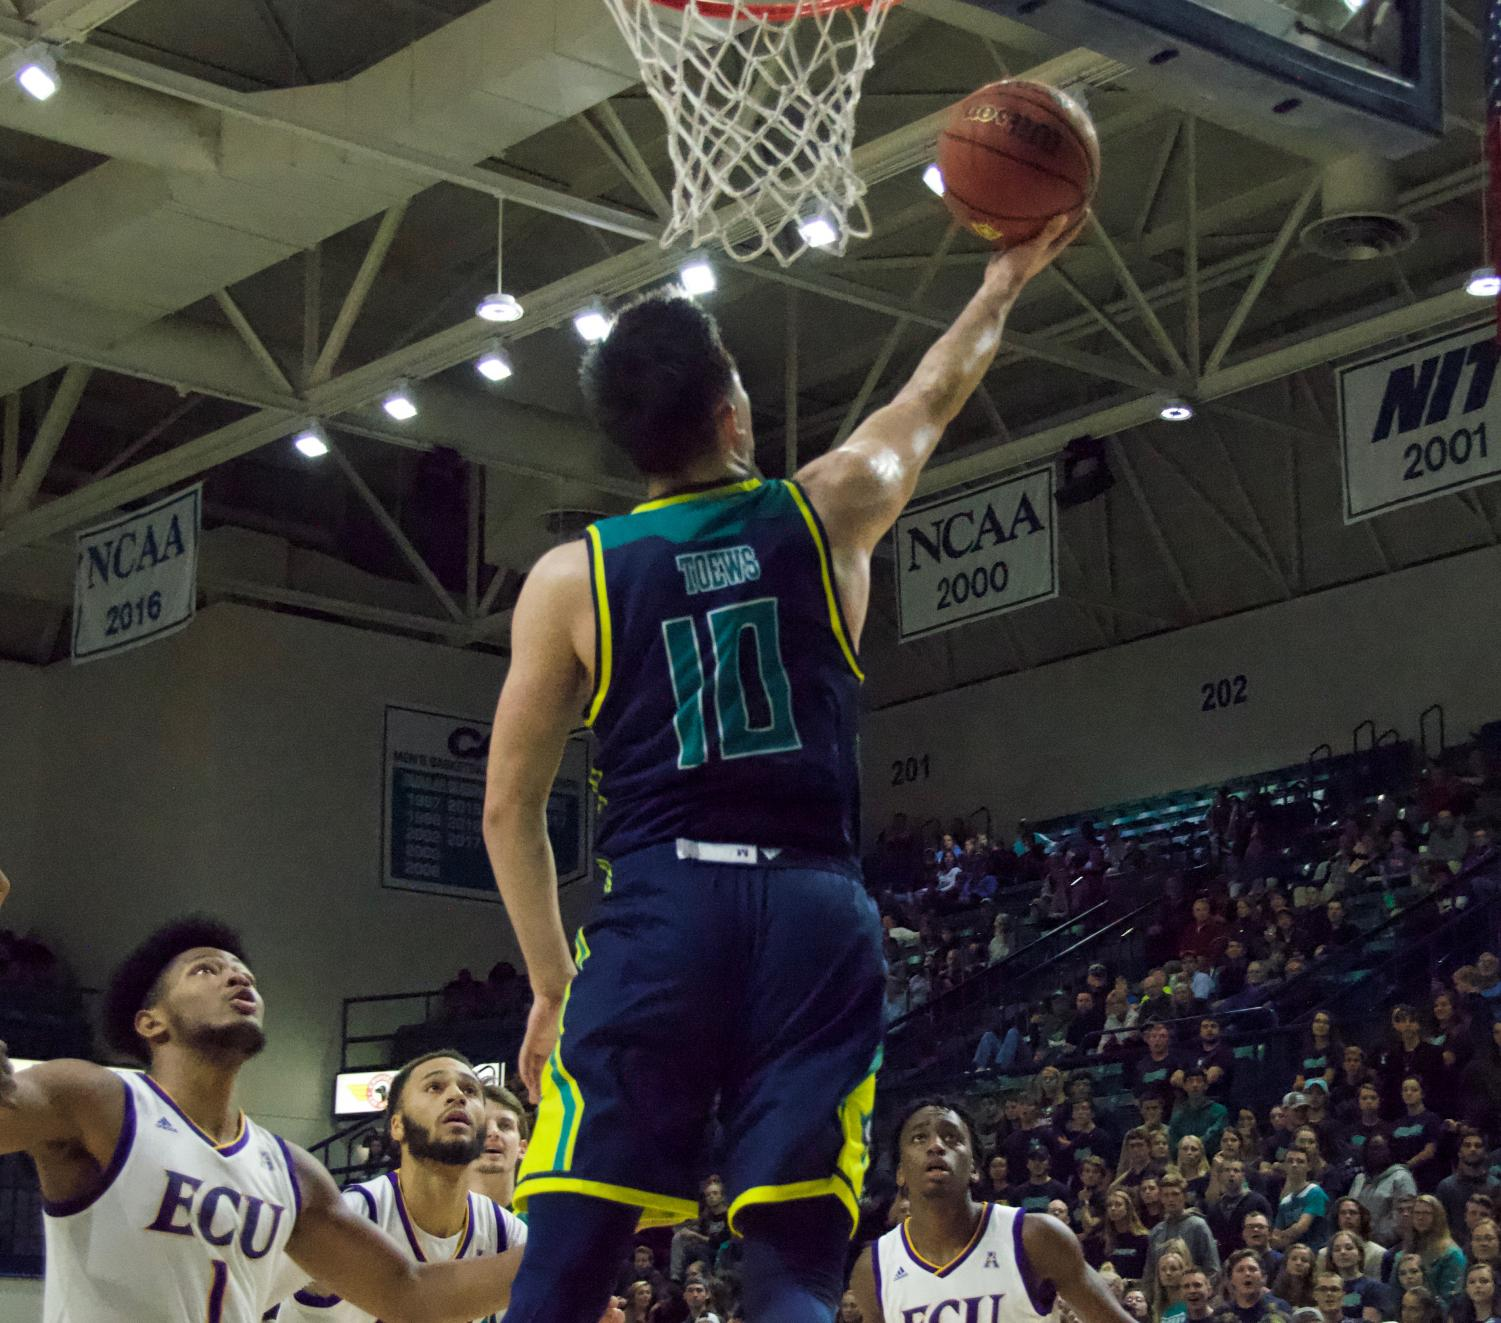 Kai Toews (10) shoots a layup during UNCW's contest against East Carolina on Nov. 27, 2018. The Seahawks won 95-86.